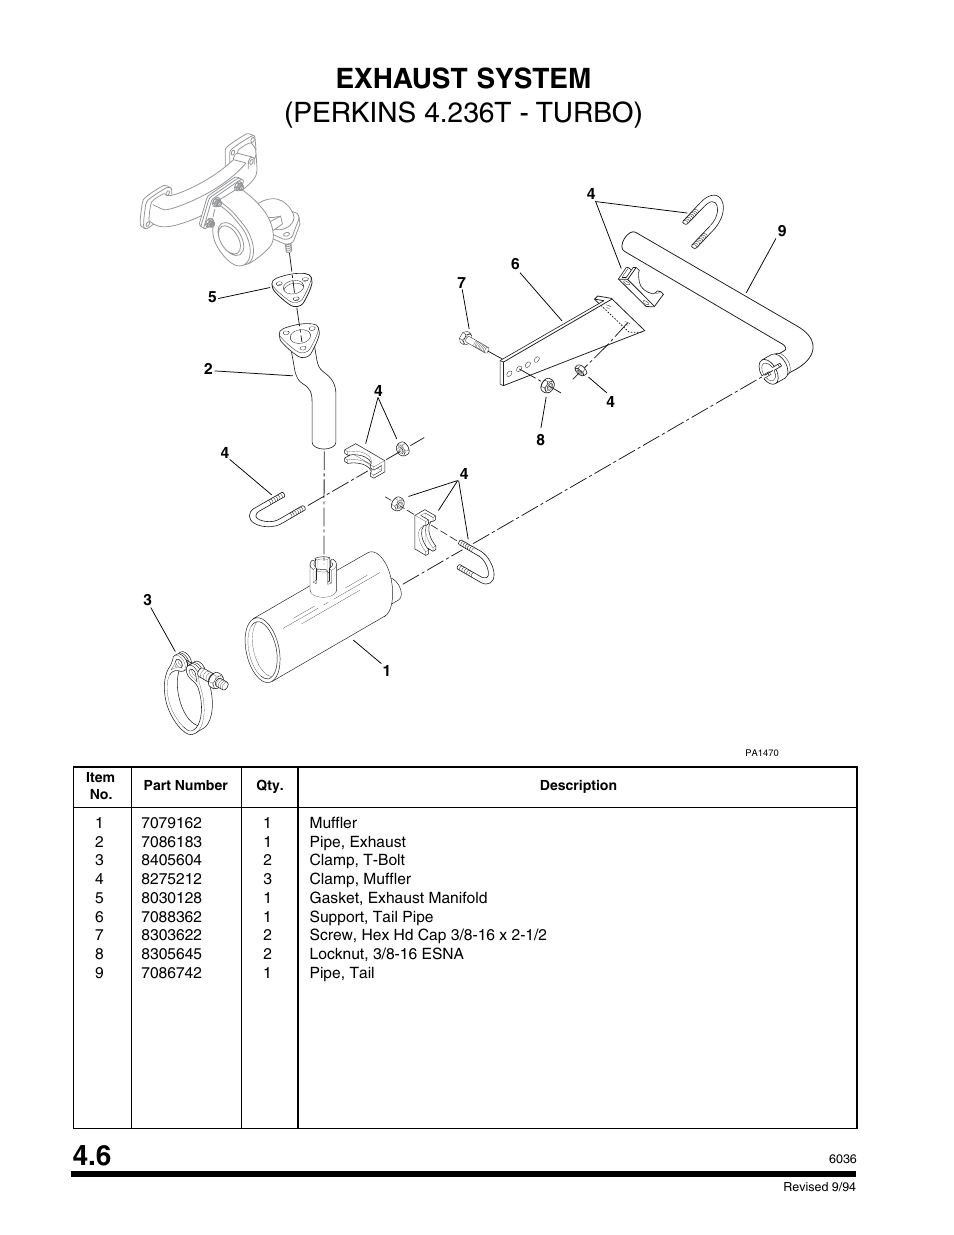 Exhaust system (perkins 4.236t - turbo)   SkyTrak 6036 Parts Manual User  Manual   Page 112 / 300